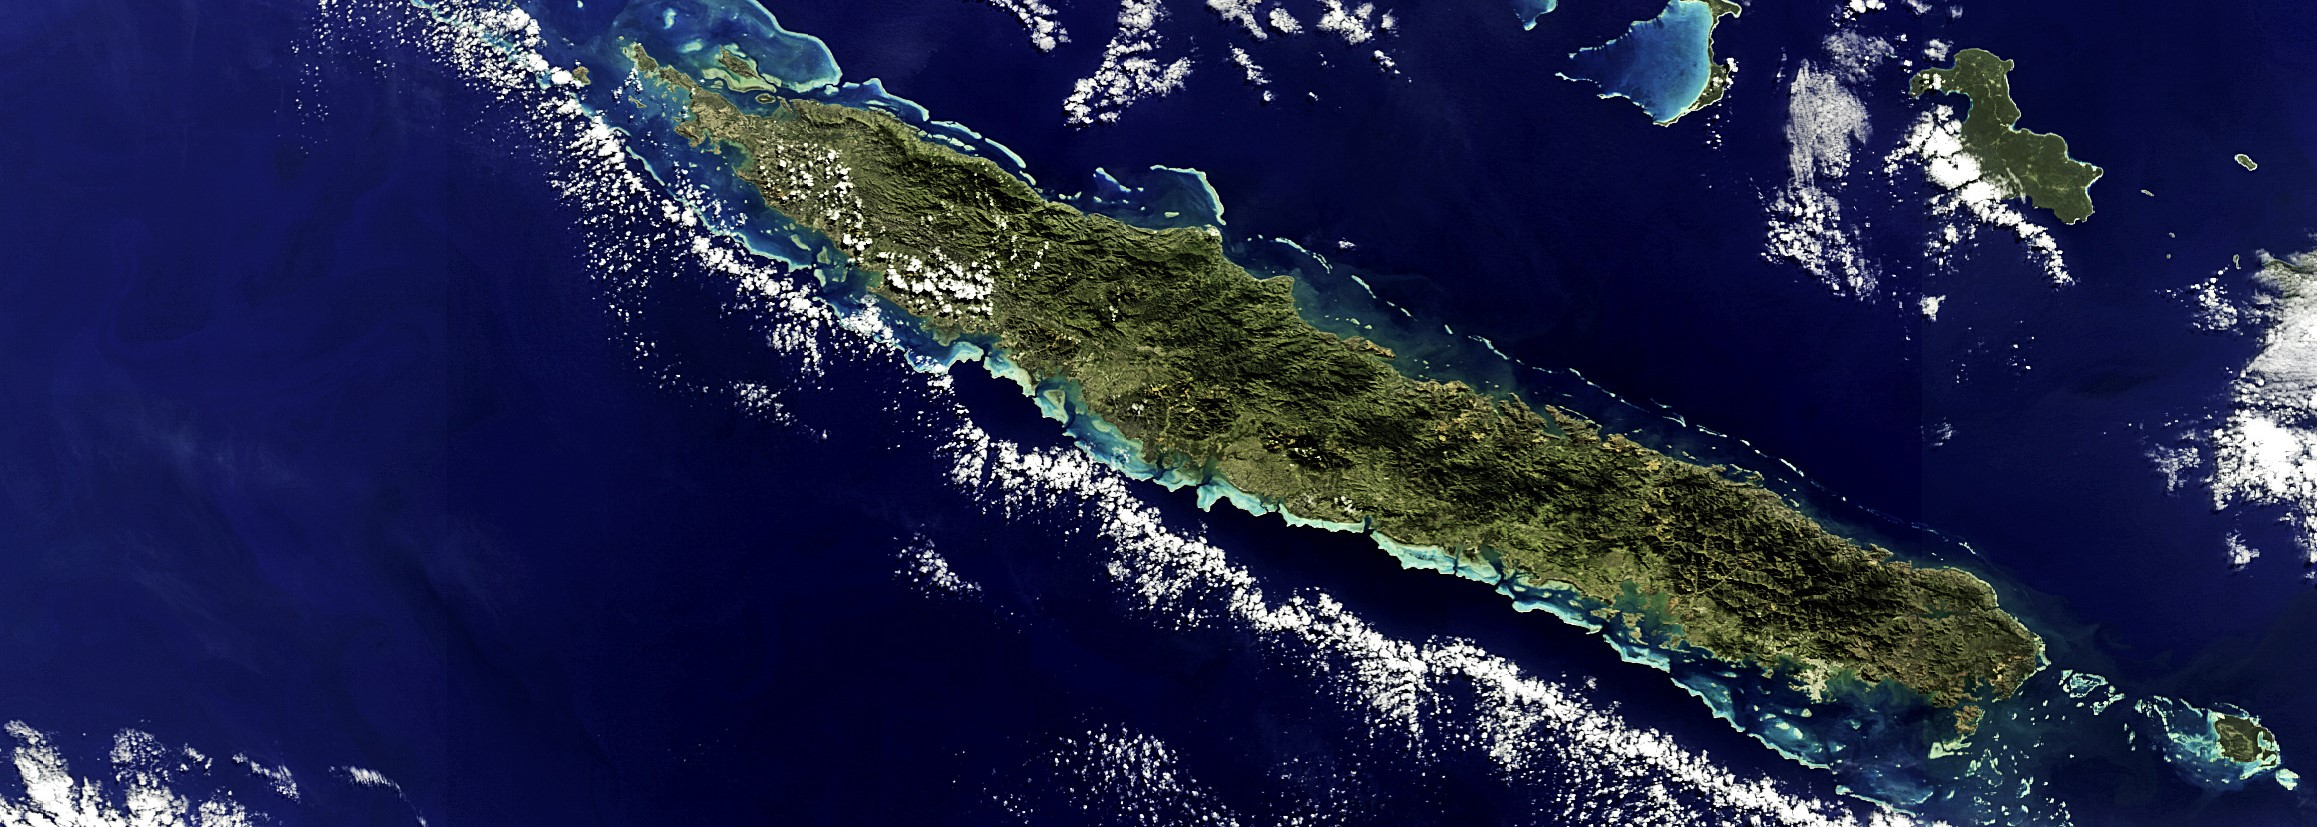 The New Caledonia archipelago (Photo: Envisat image via Creative Commons)